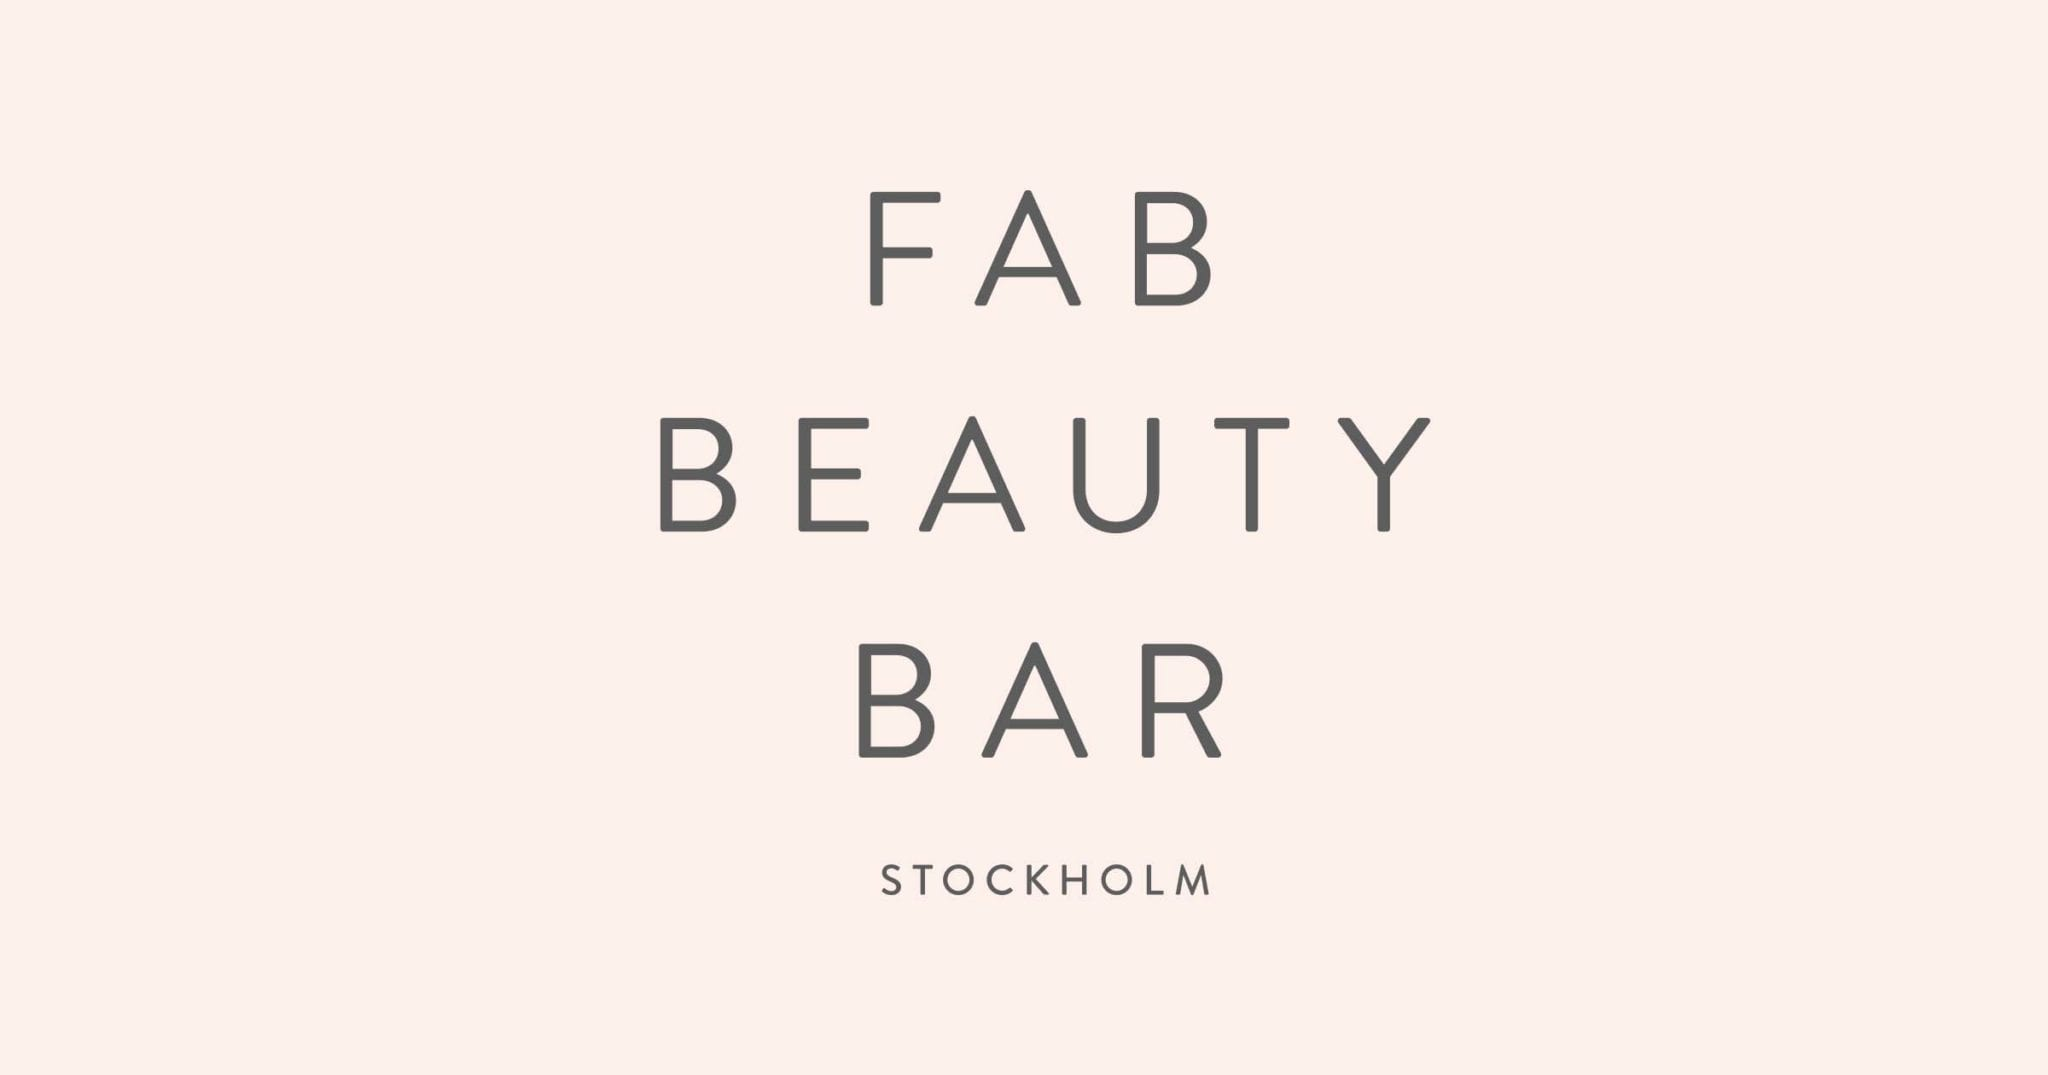 Fab Beauty Bar